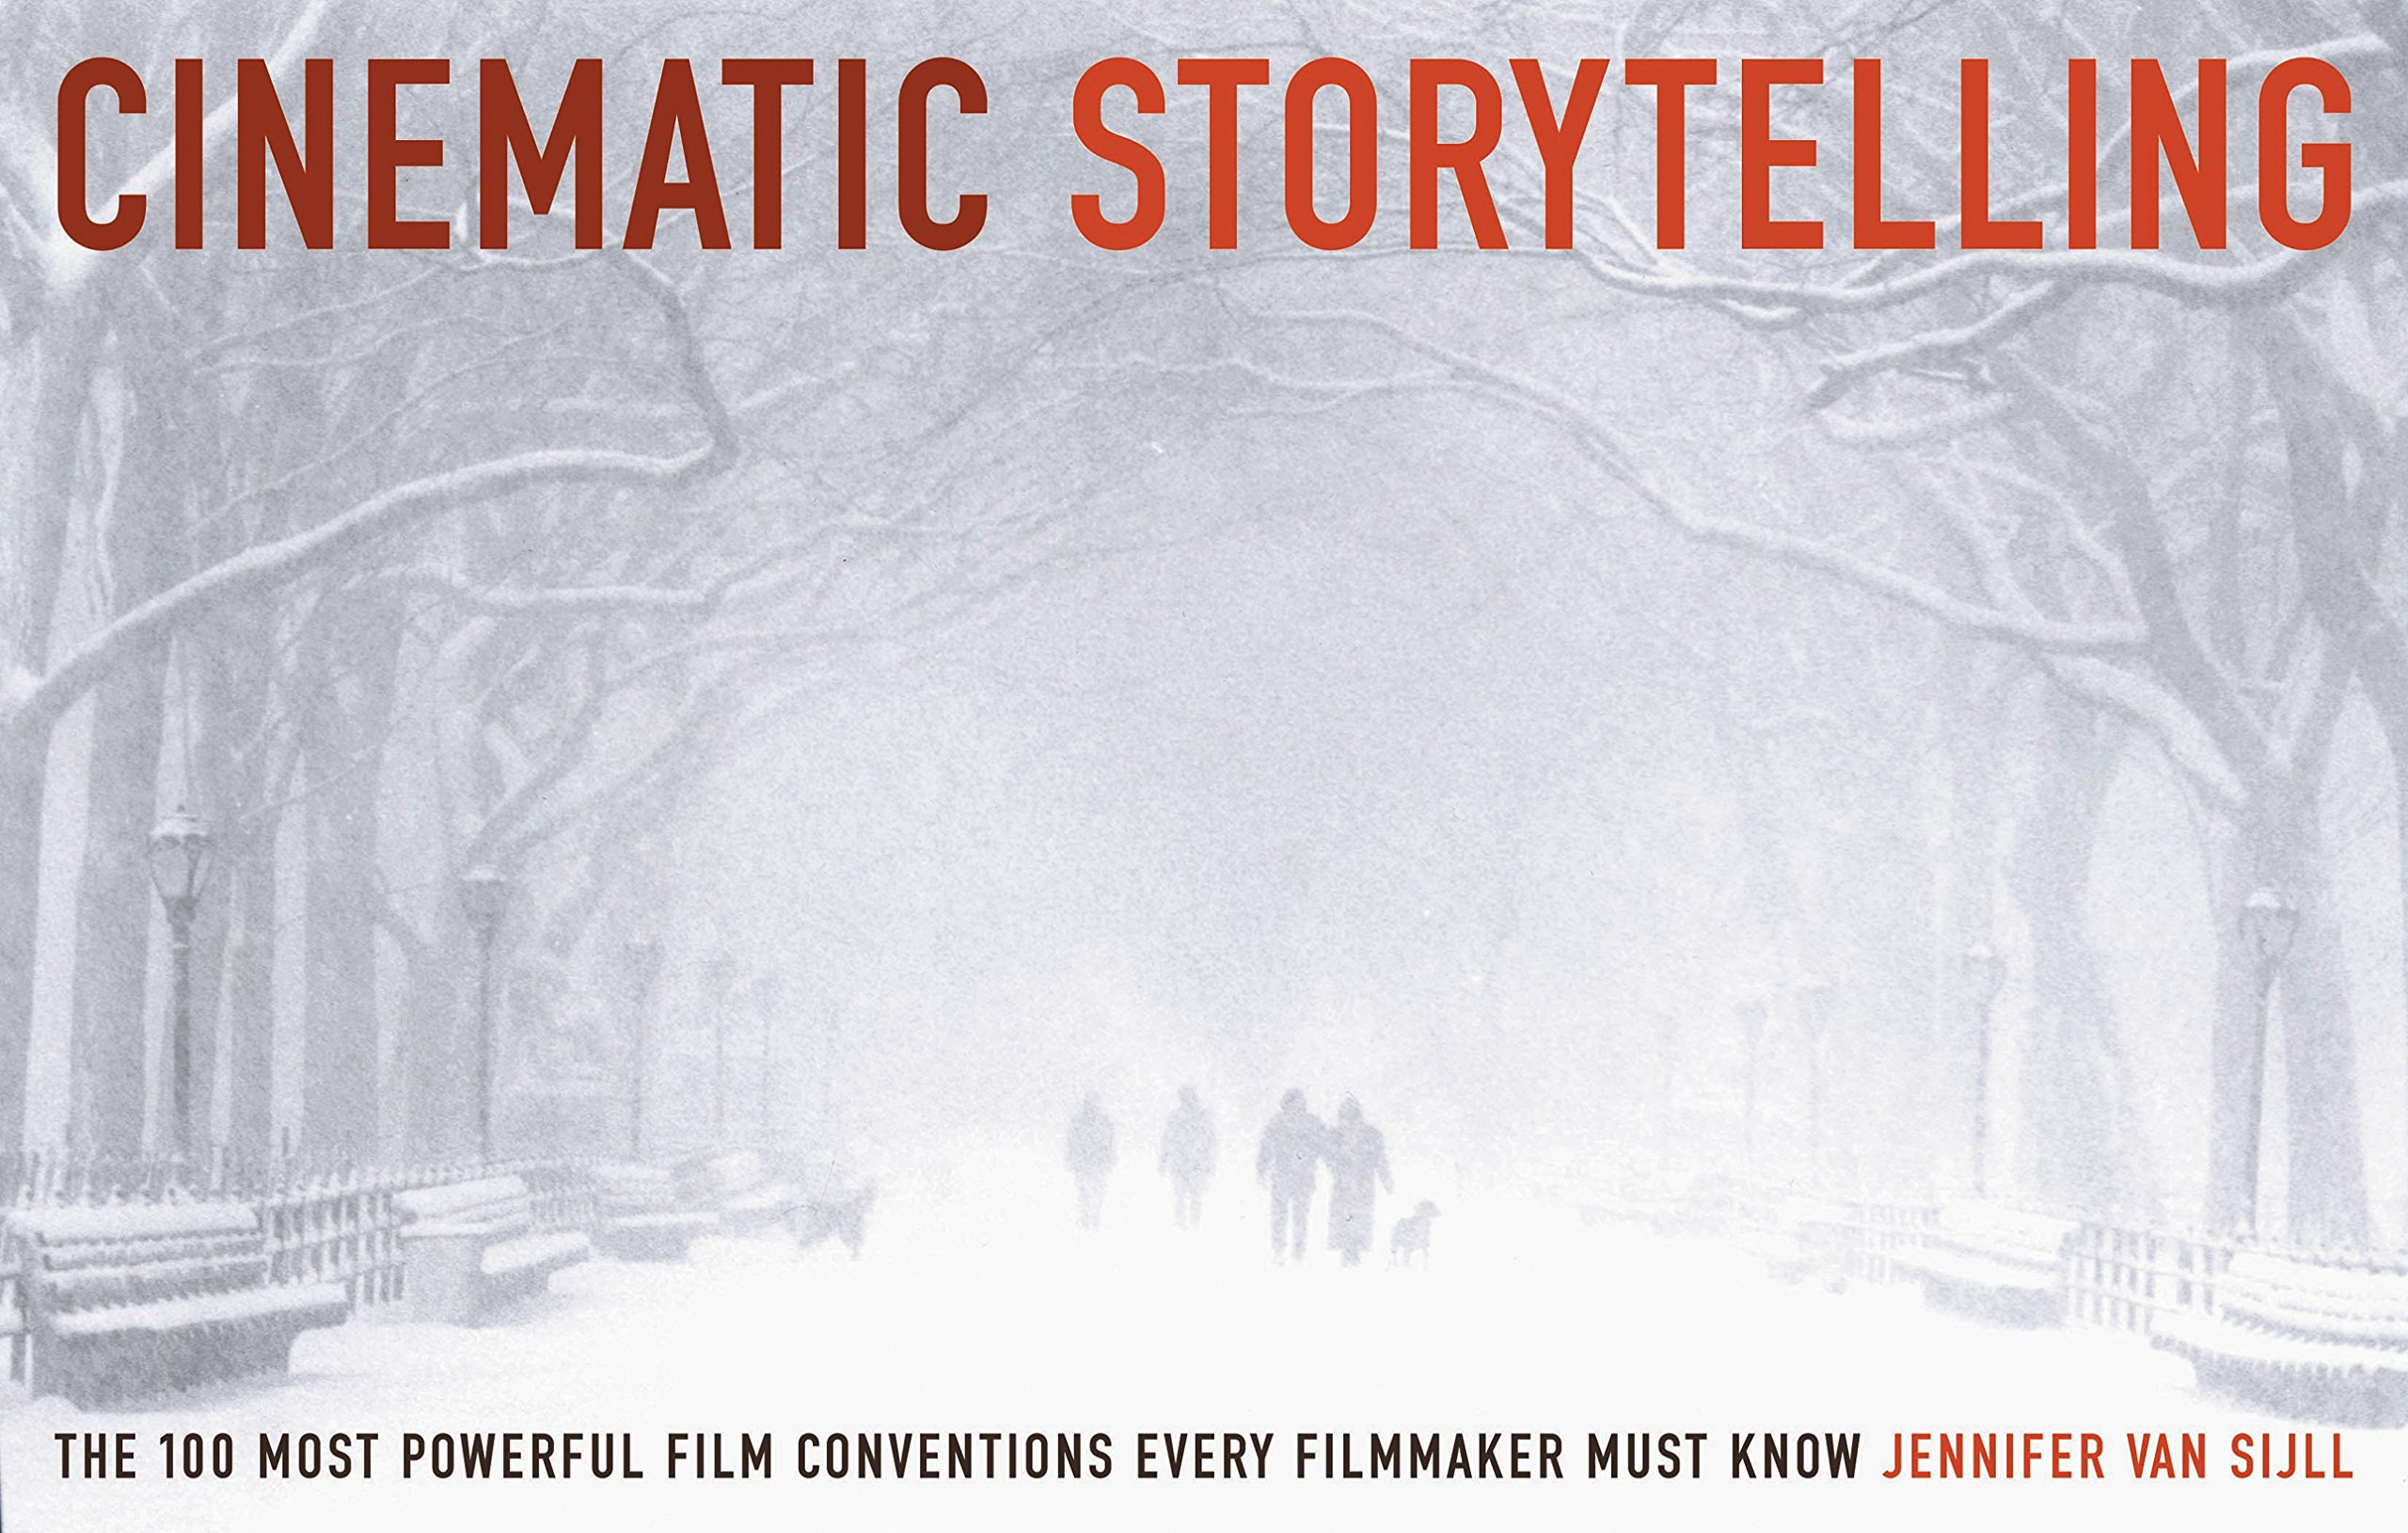 cinematic storytelling the 100 most powerful film conventions every filmmaker must know